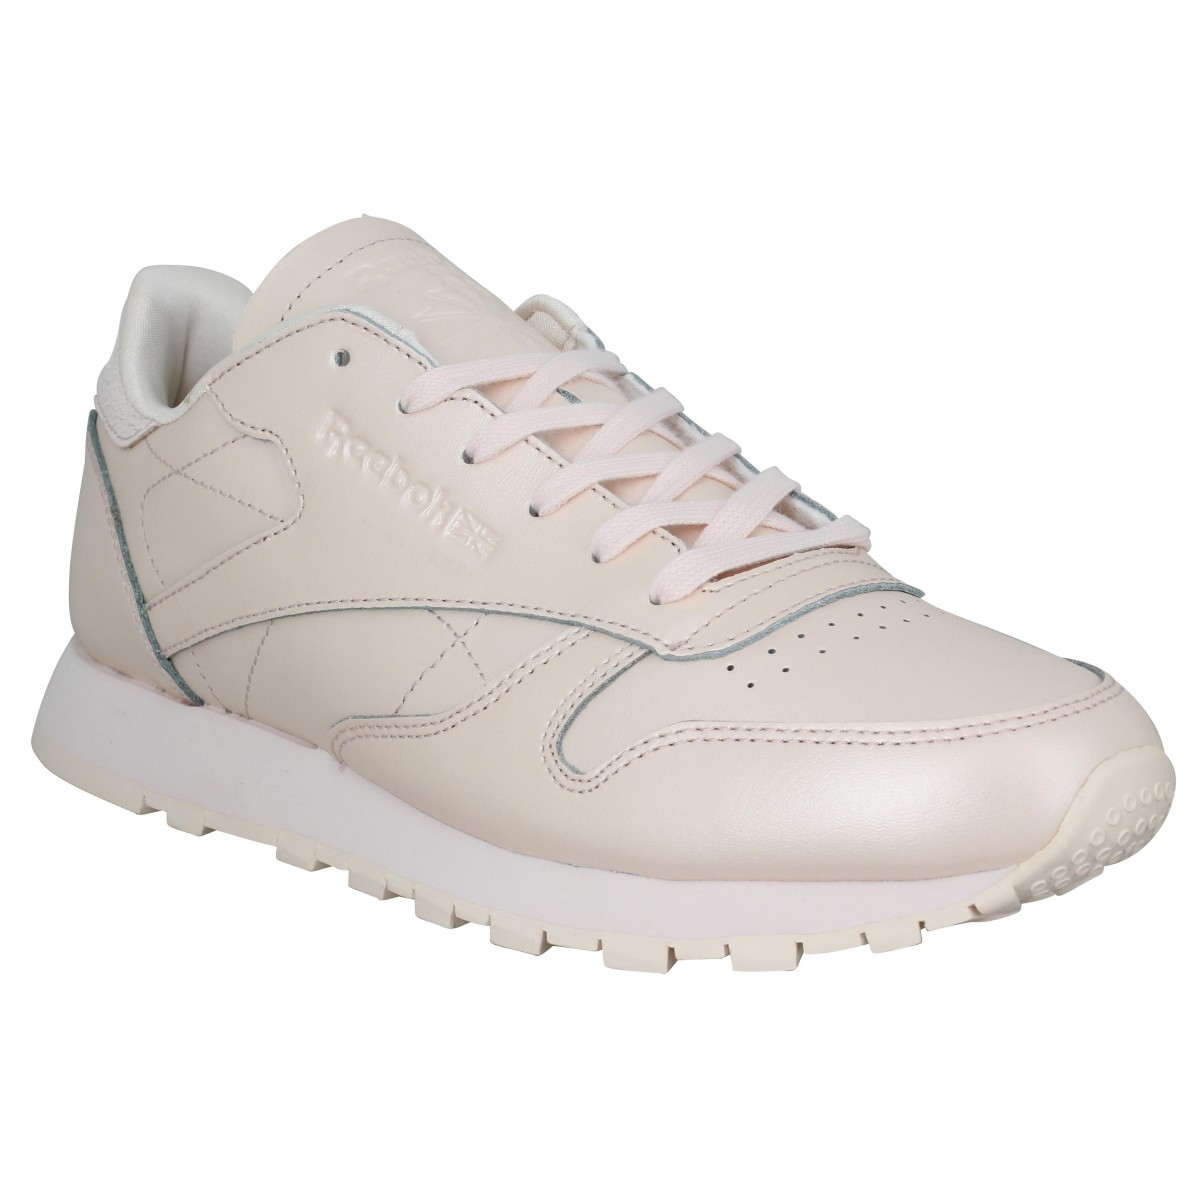 c1cca295f33c5 Baskets REEBOK Classic Leather cuir Femme Rose